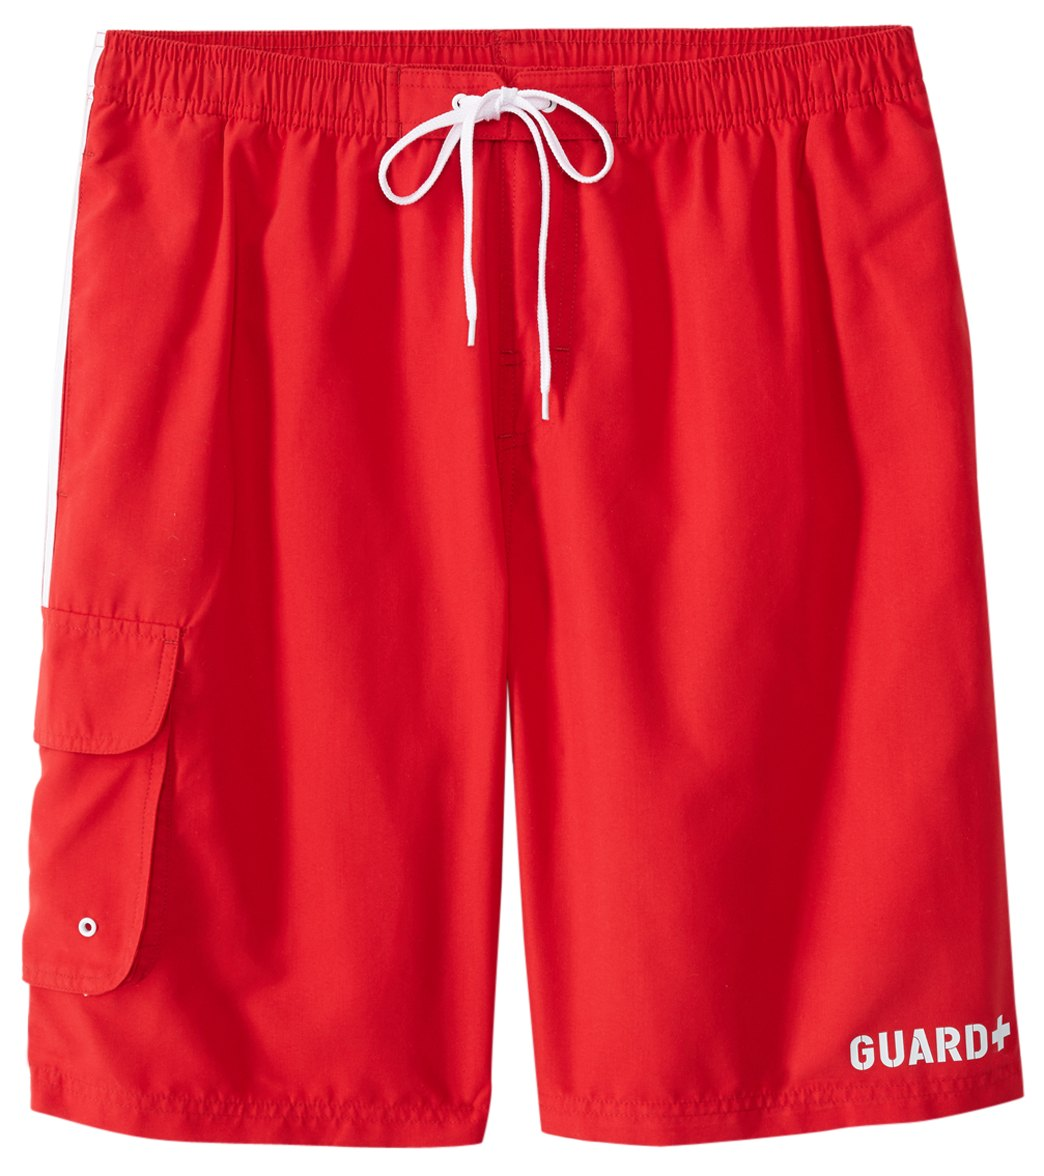 swimming shorts sporti guard menu0027s cargo swim trunk at swimoutlet.com rwwaydg